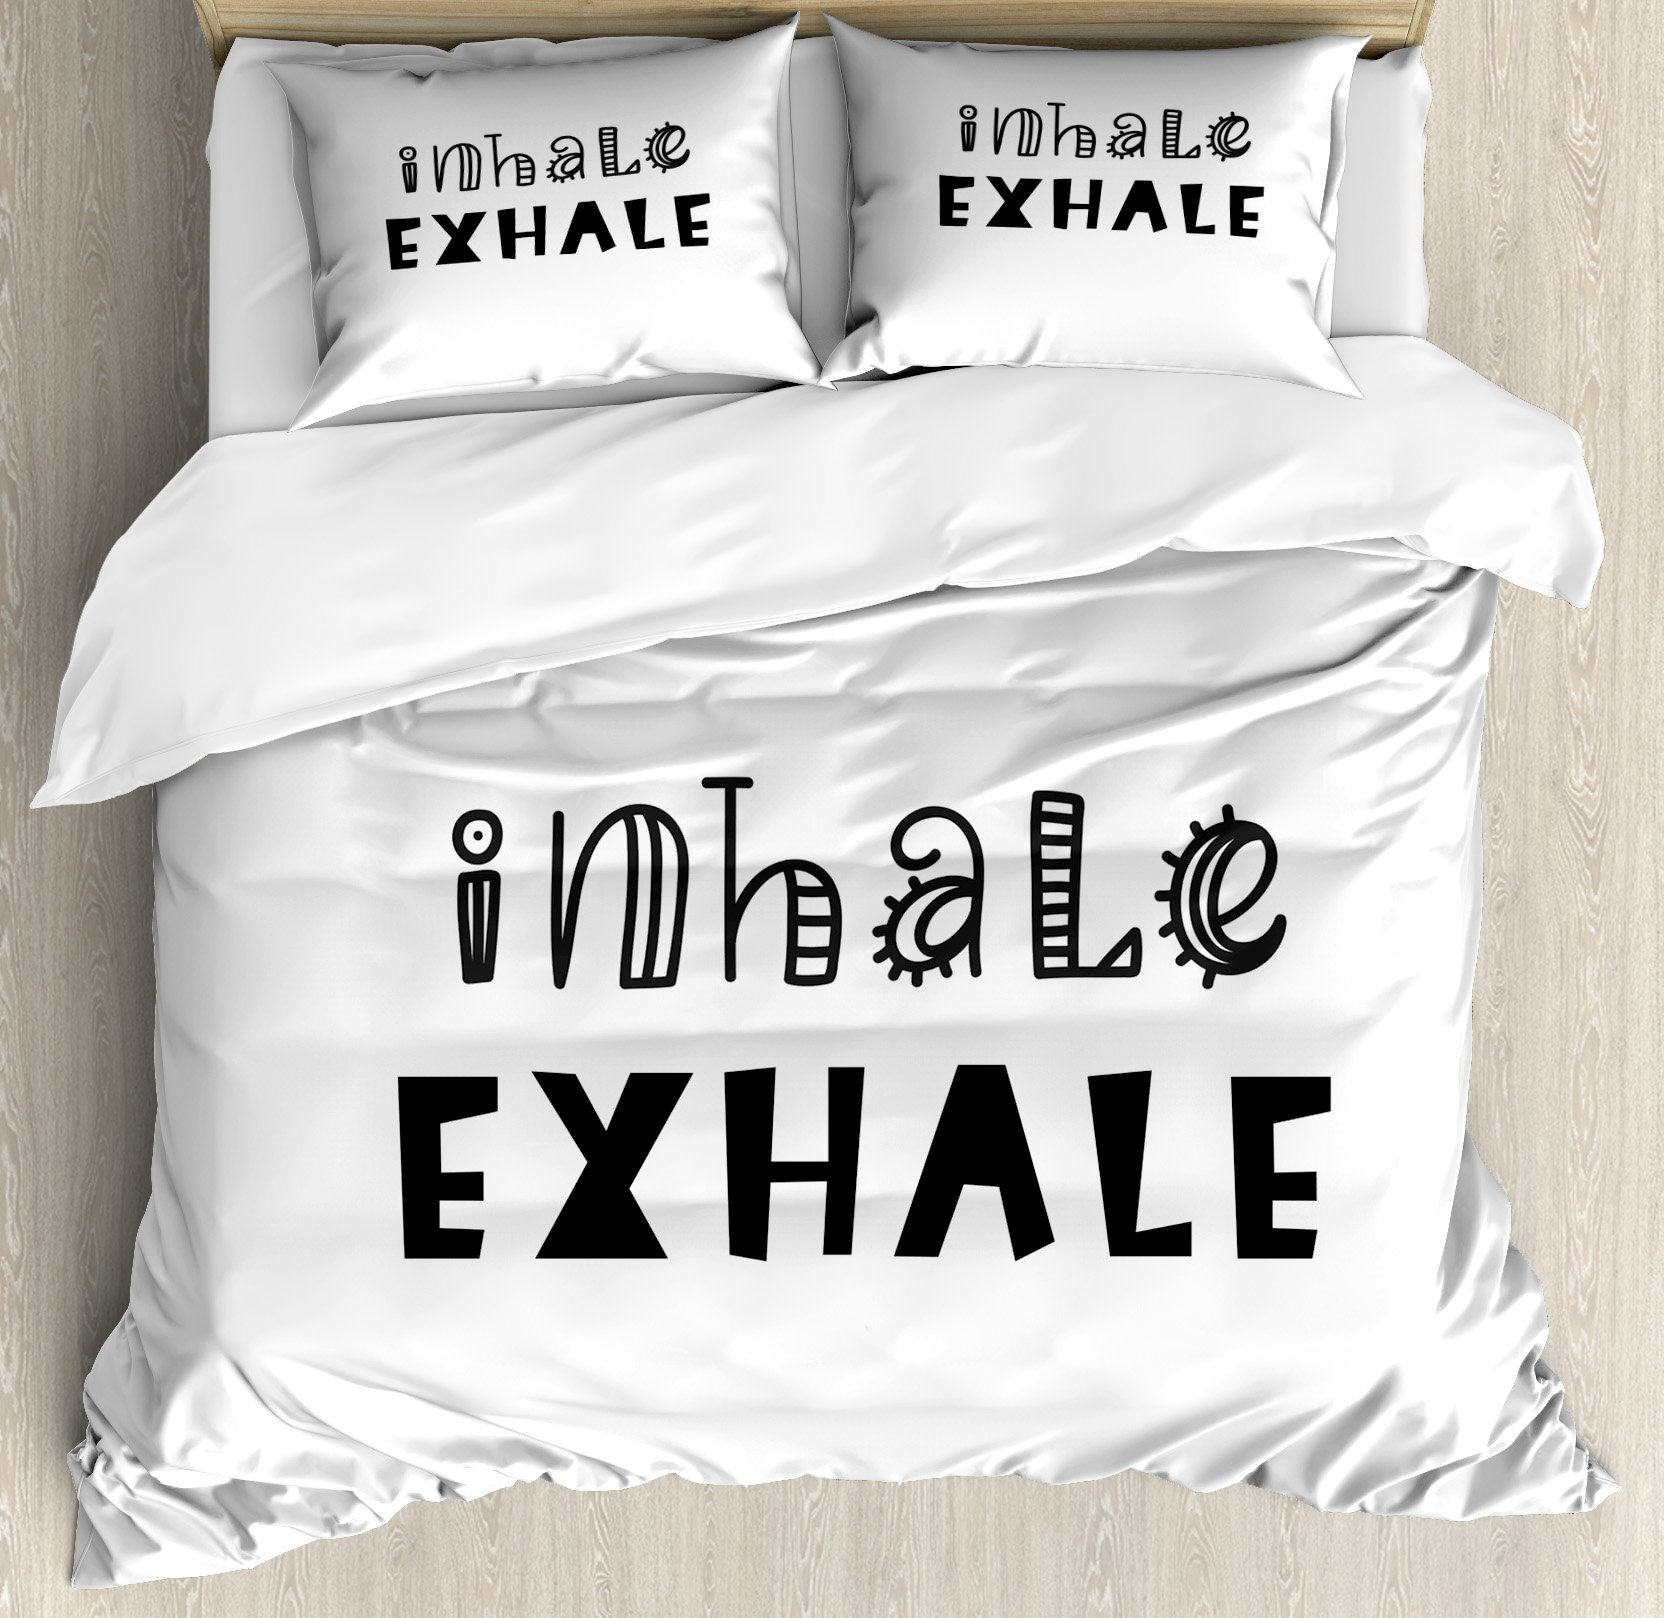 Ambesonne Inhale Exhale Queen Size Duvet Cover Set, Hippie Life Health Breath Calligraphy Balance of Life Zen Mentalcare, Decorative 3 Piece Bedding Set with 2 Pillow Shams, Black and White